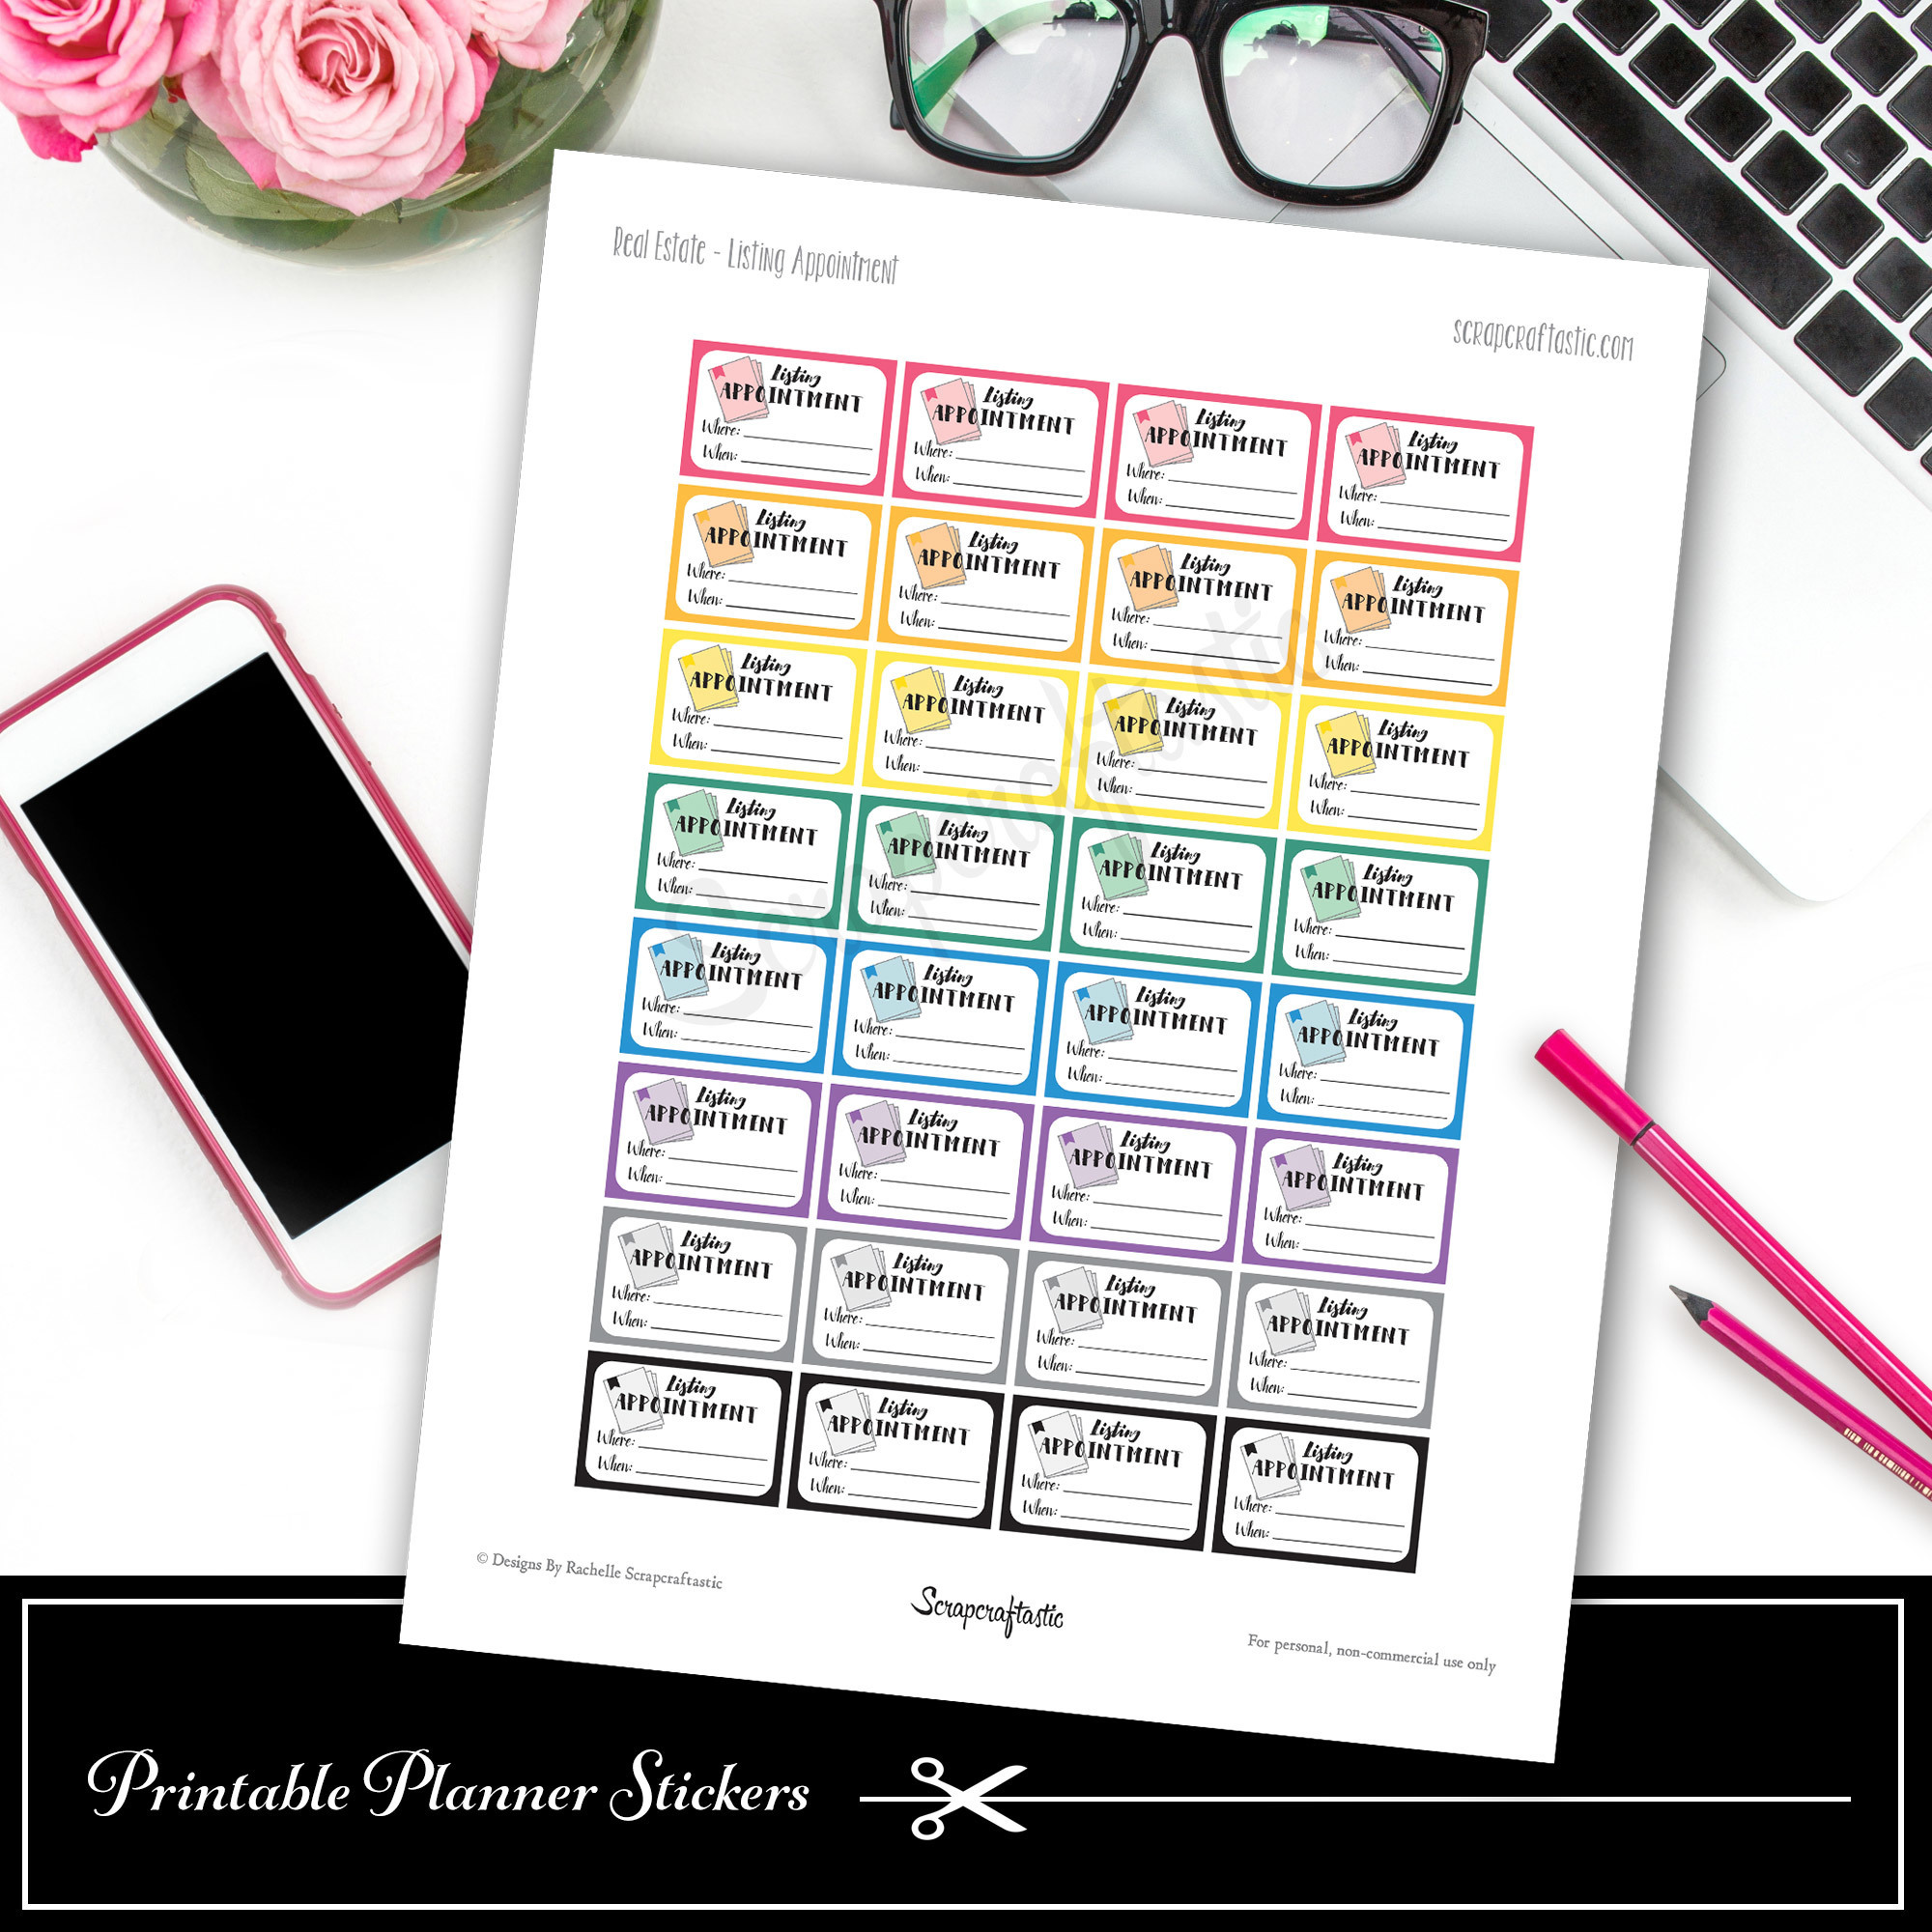 Real Estate Listing Appointment Printable Planner Stickers - Half Box 03000